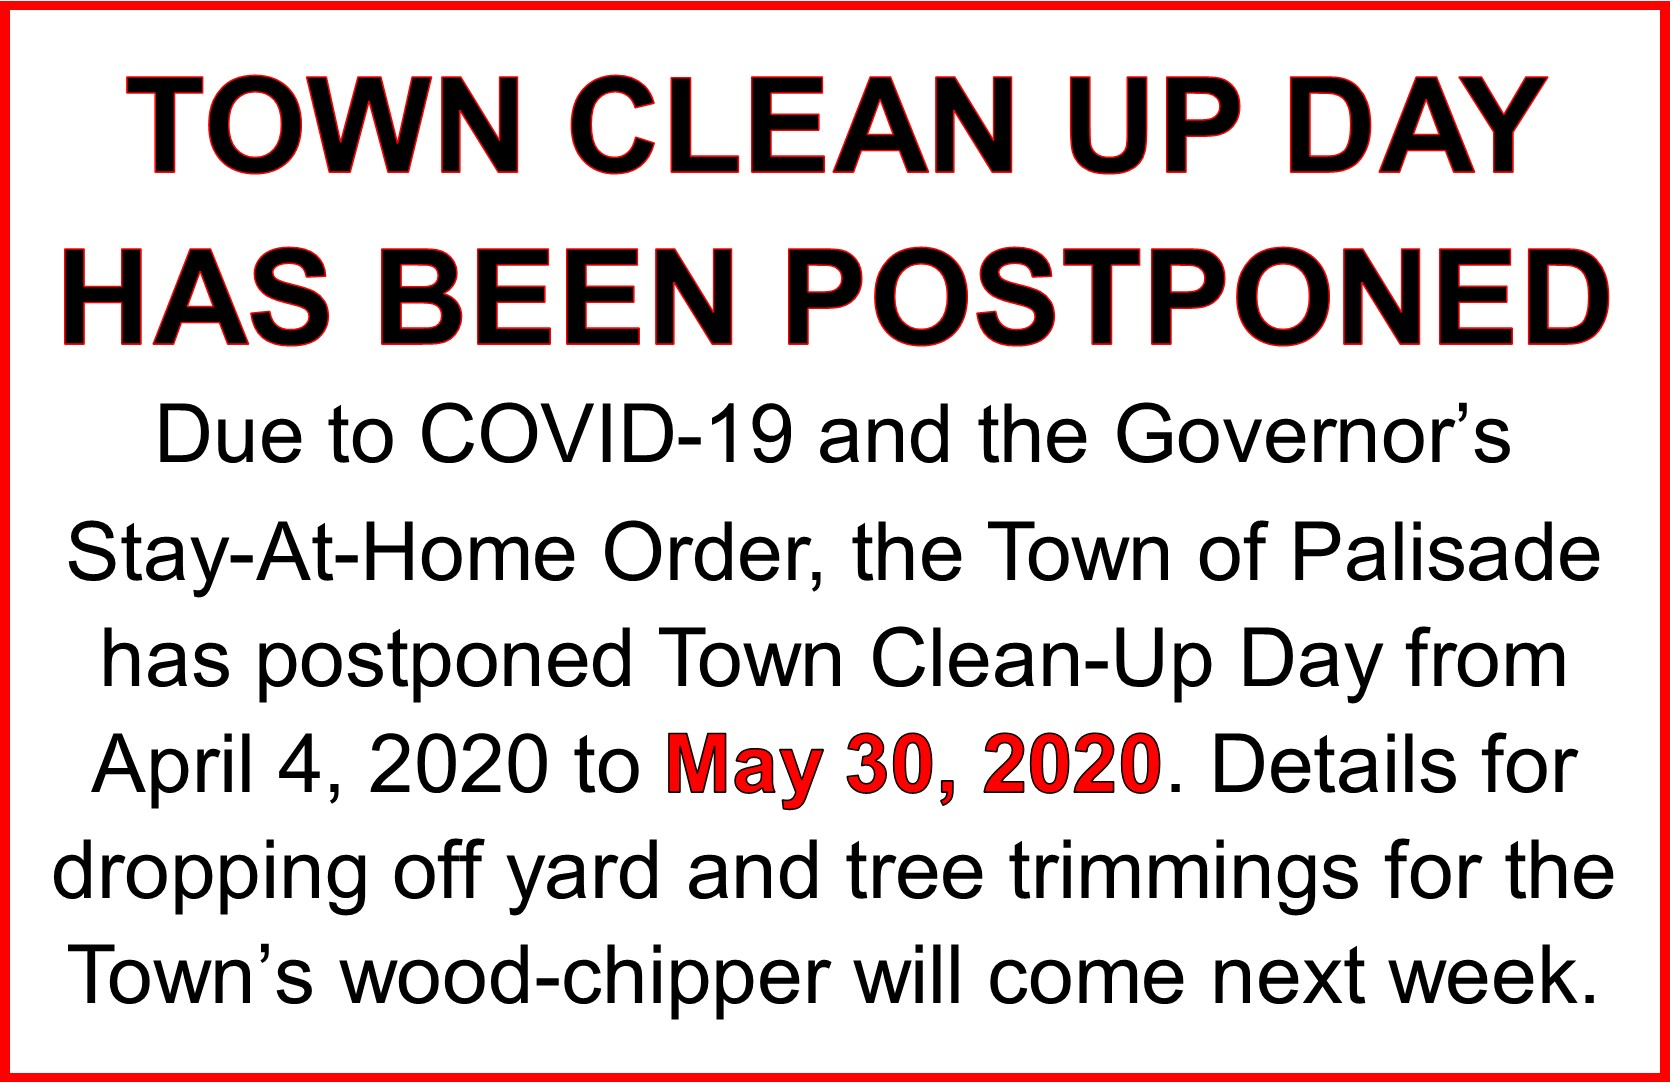 Town Clean Up Day Postponed